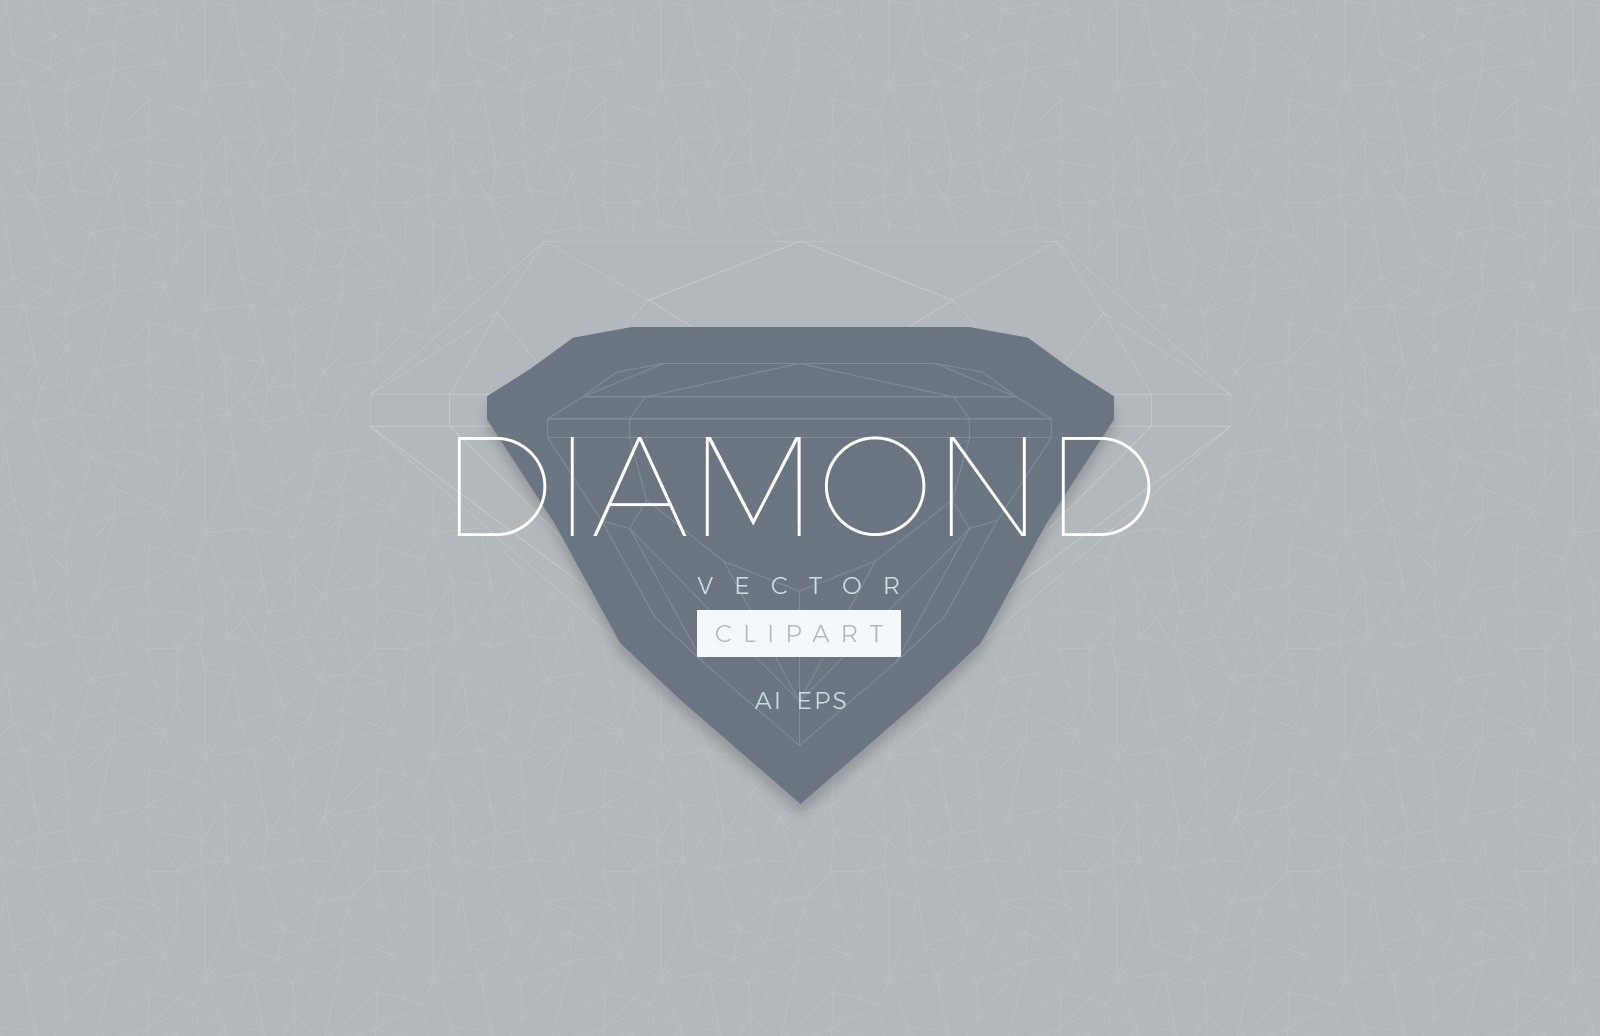 Diamond Vector Clipart Preview 1